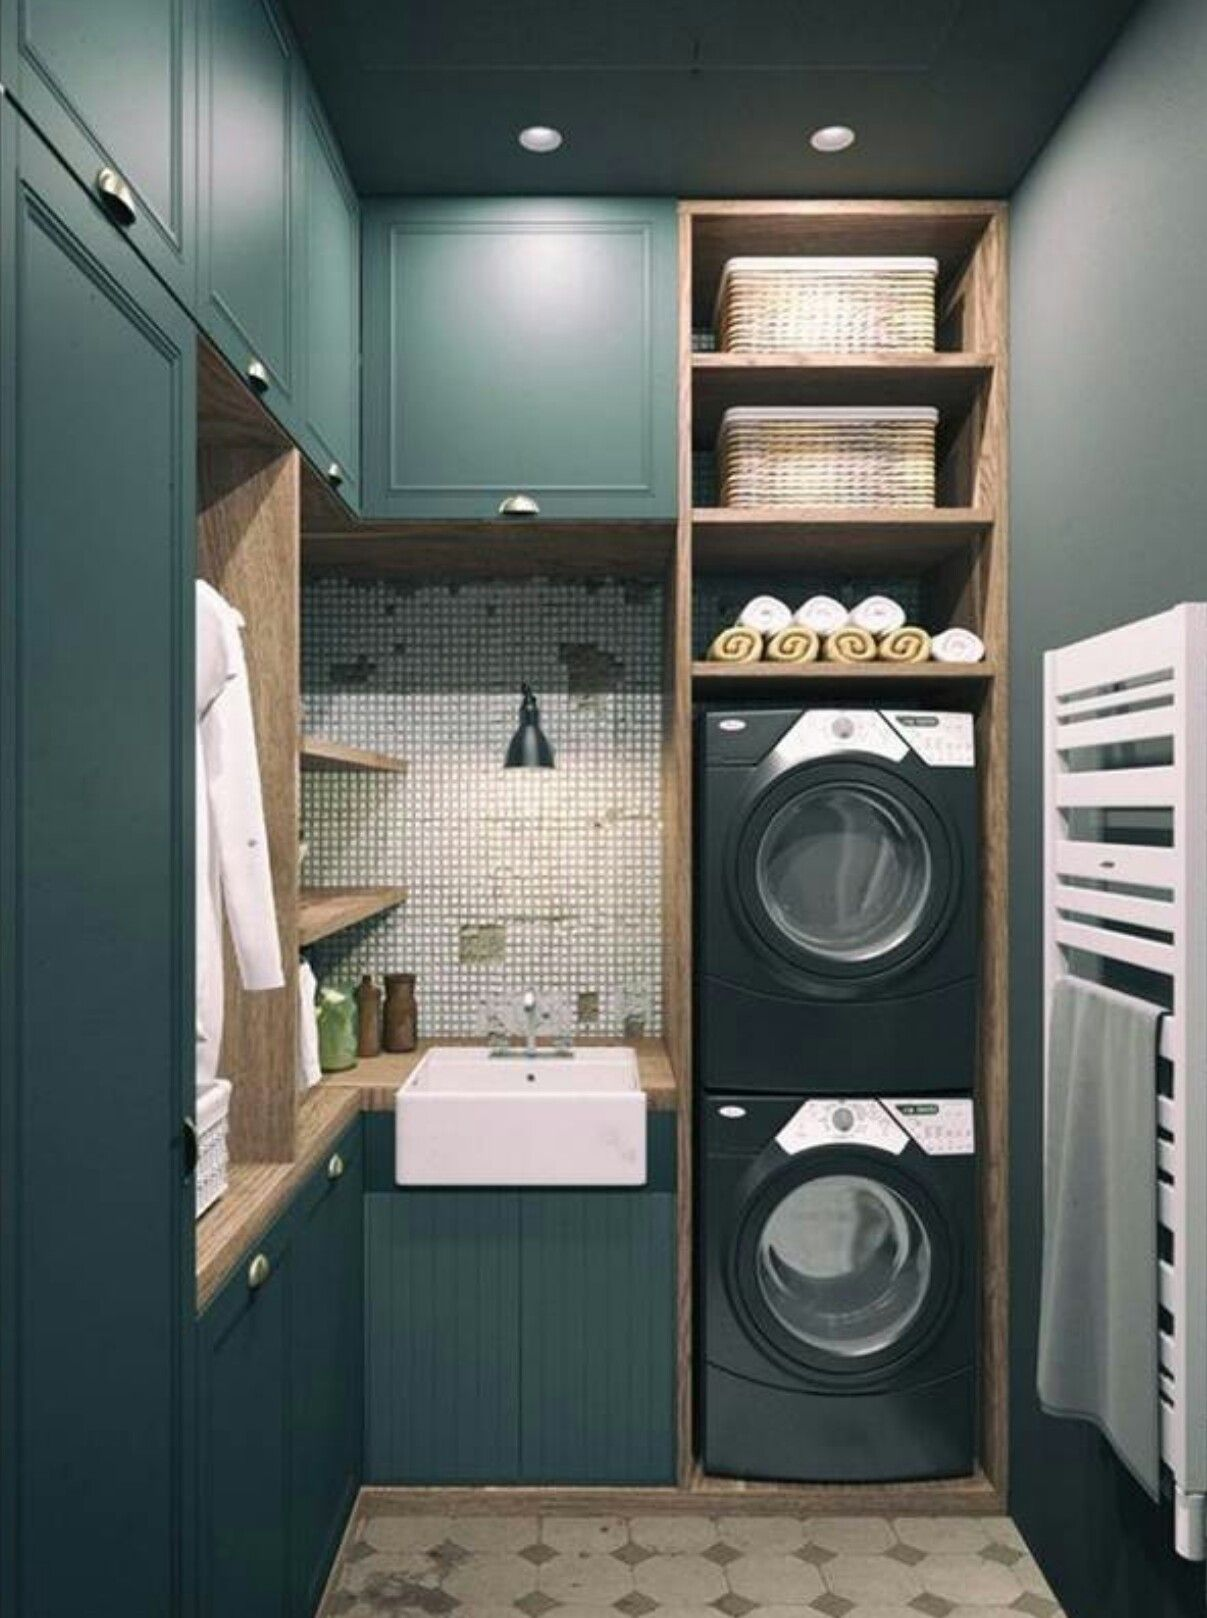 Laundry room and bathroom combo designs - The Chic Technique Modern Decor Meets Classical Features In Two Transitional Home Designs